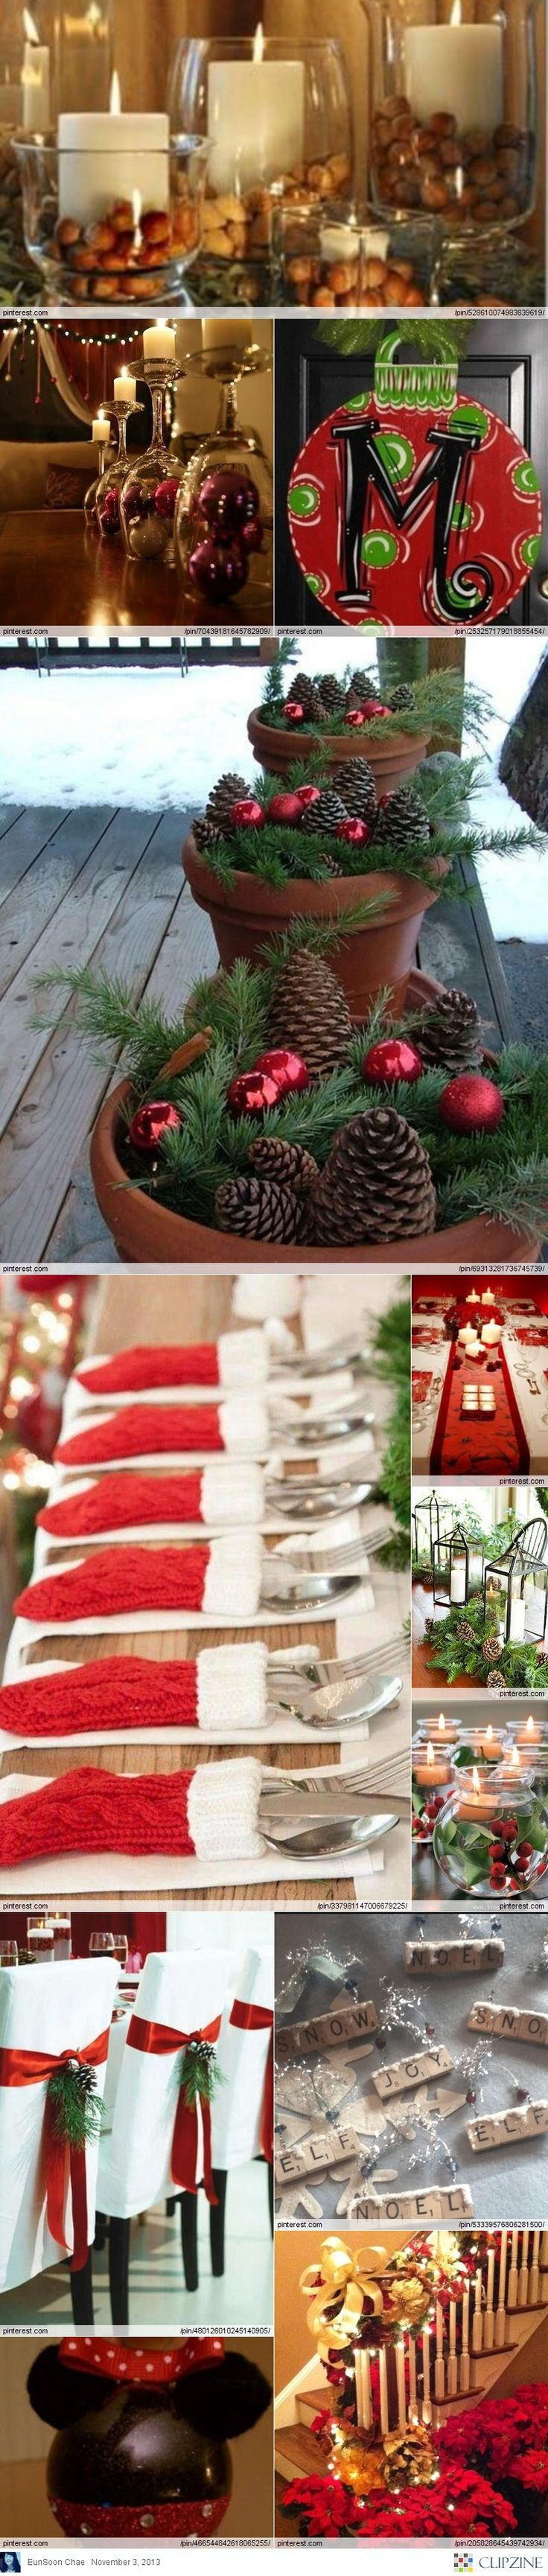 Christmas Decorations - love the silverware holders